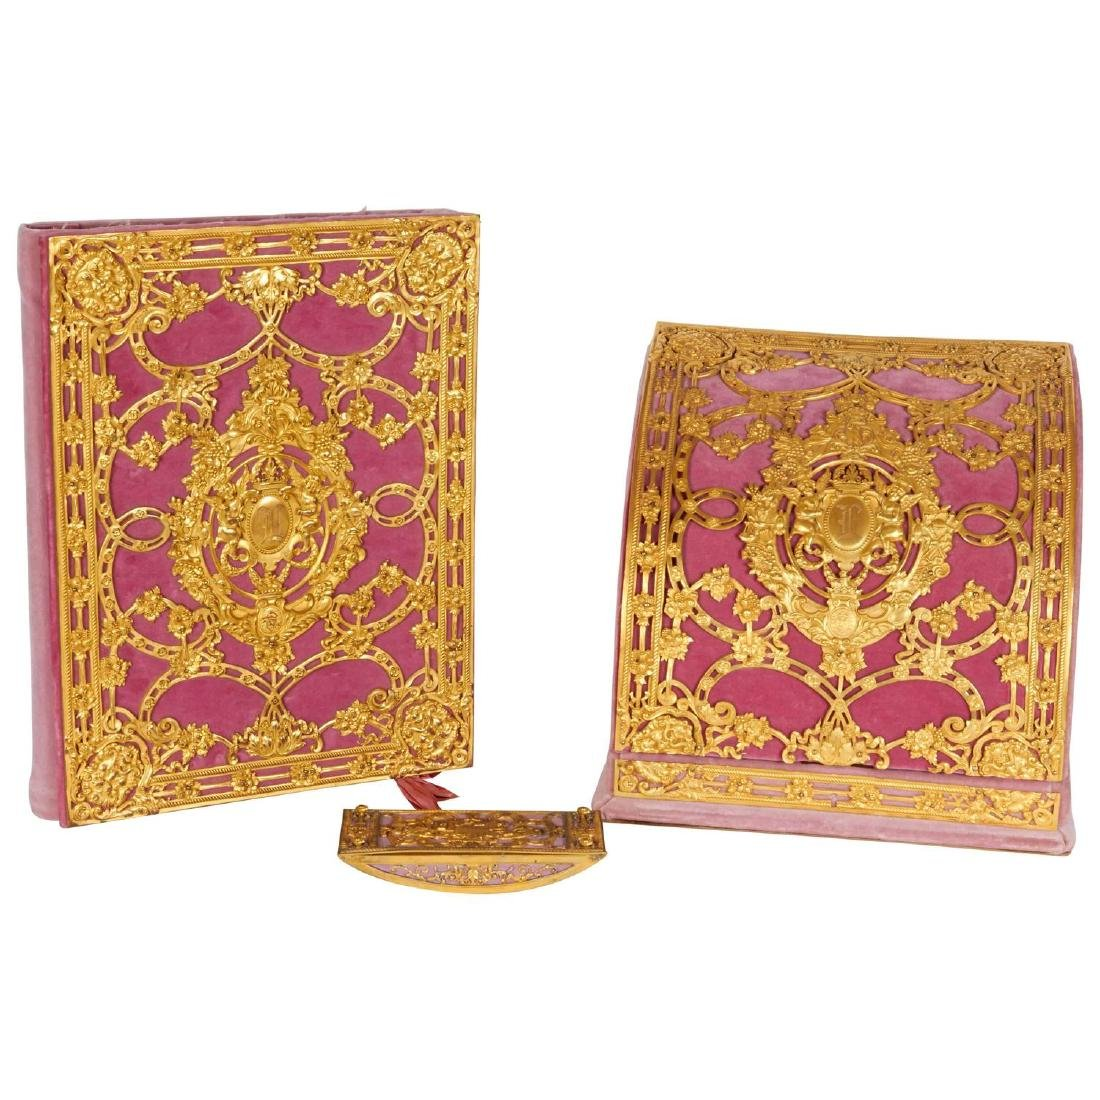 Ormolu-Mounted Pink Velvet Desk Set E. F. Caldwell & Co